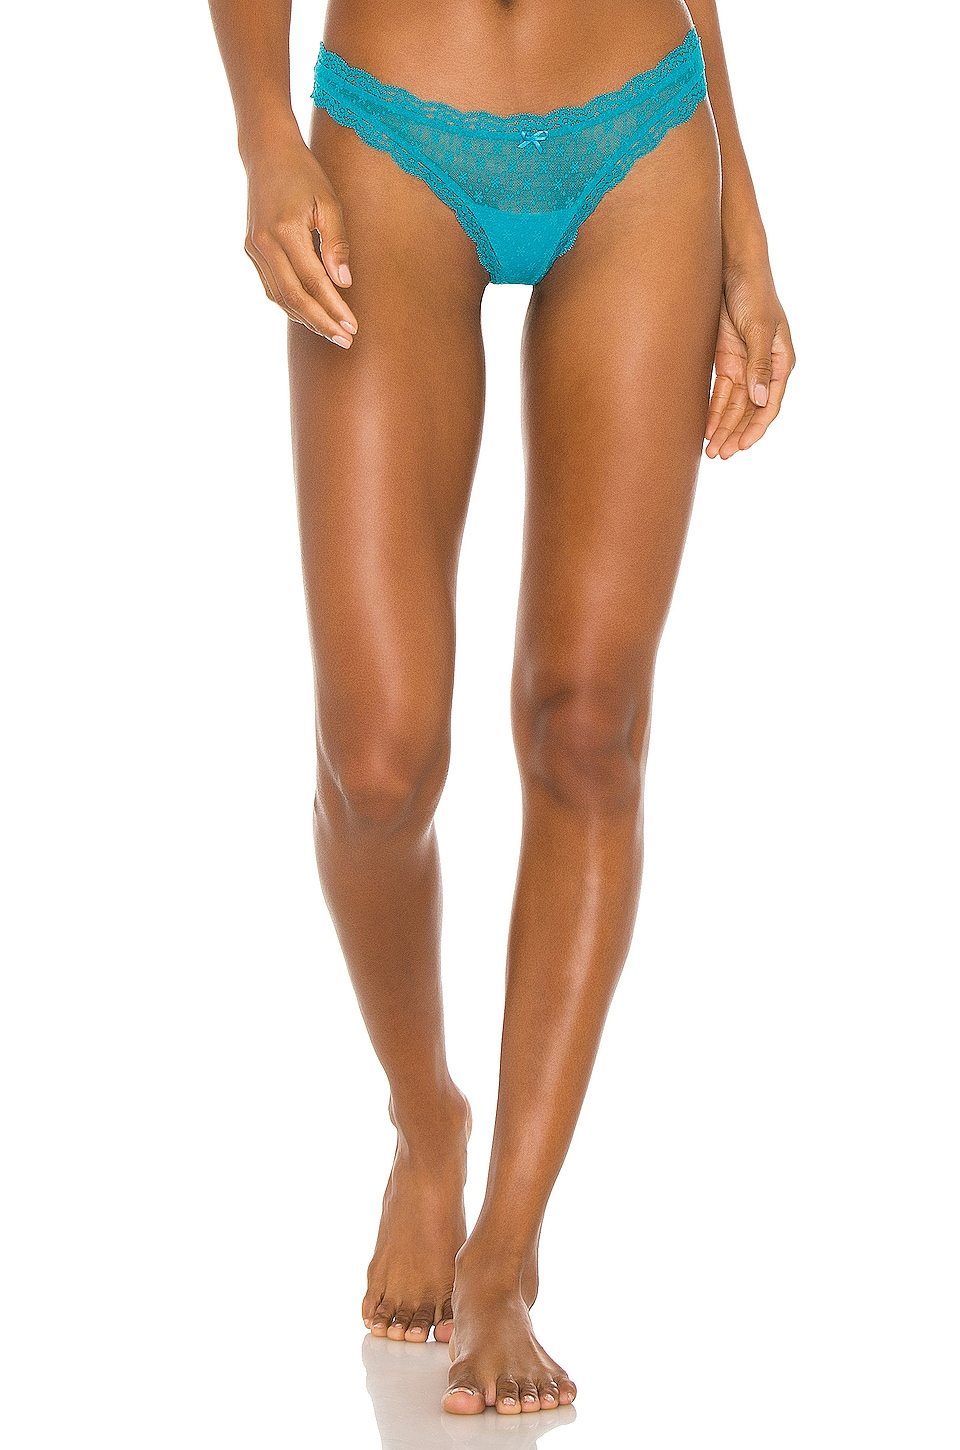 eberjey Delirious Lace Low Thong in Turquoise